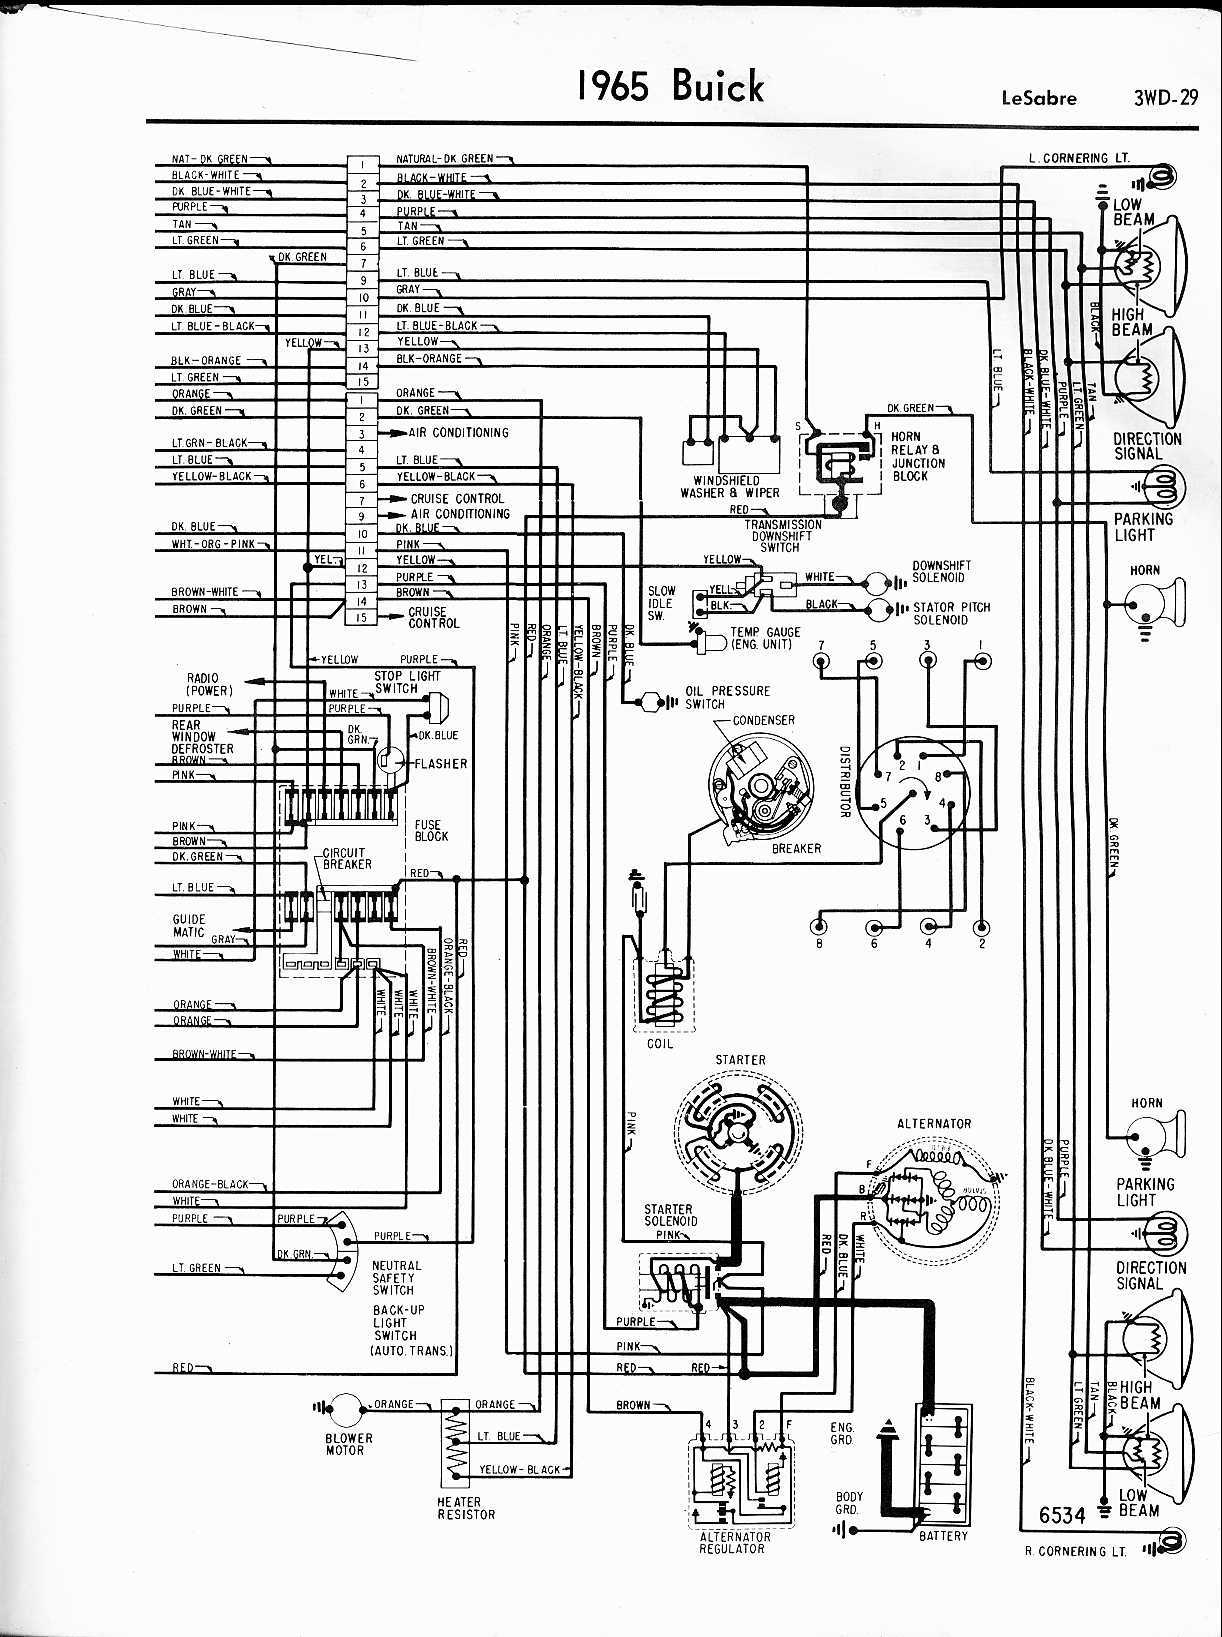 hight resolution of 1964 buick skylark fuse box diagram modern design of wiring diagram u2022 1996 buick skylark fuse box diagram 1964 buick skylark fuse box diagram